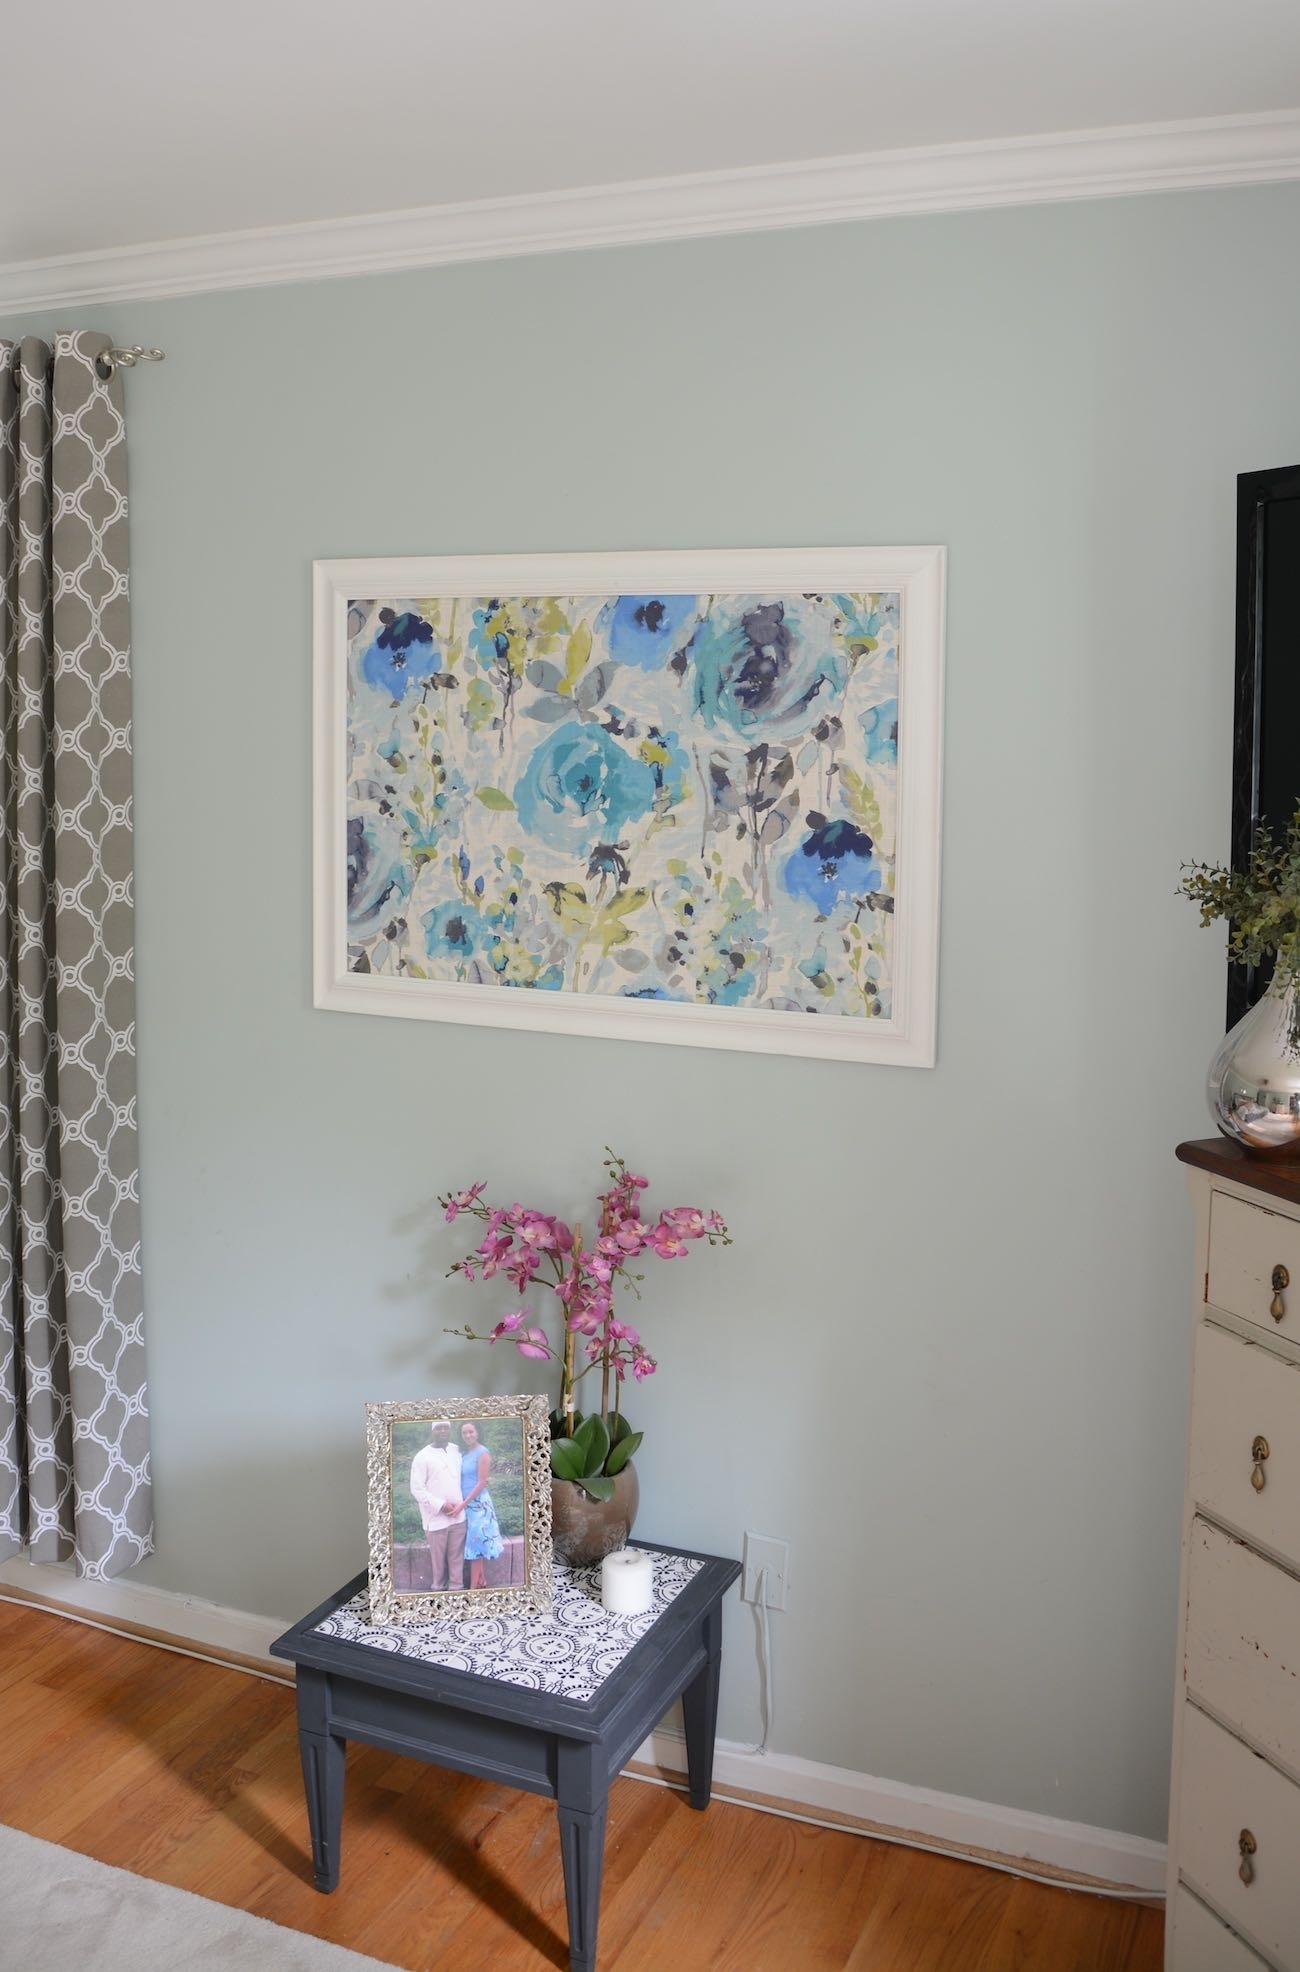 How To Frame Fabric For Wall Art With A Picture Frame Within Newest Fabric Wall Art Frames (View 9 of 15)